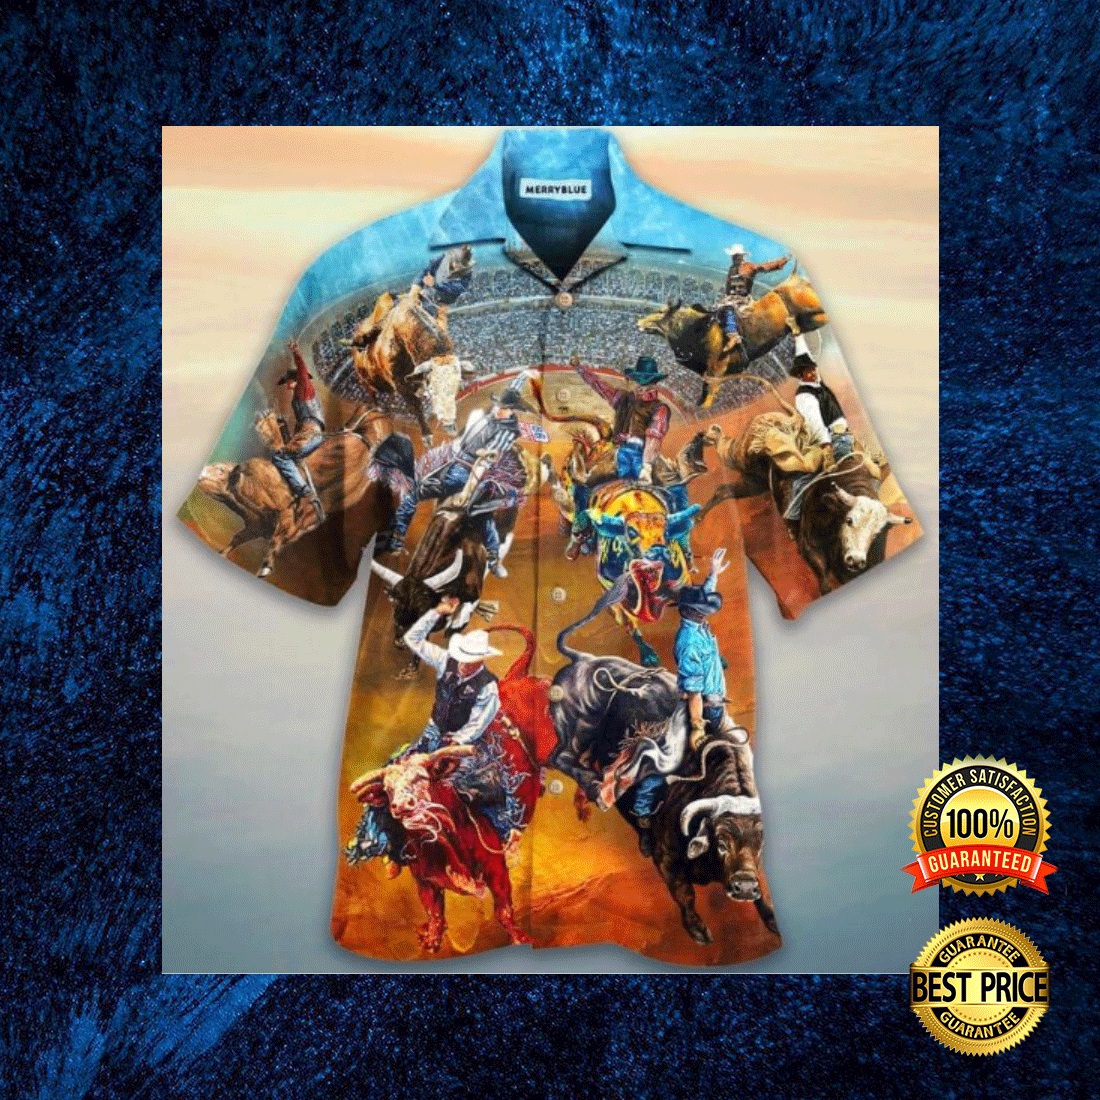 RODEO LIFE IS THE BEST LIFE HAWAIIAN SHIRT 7